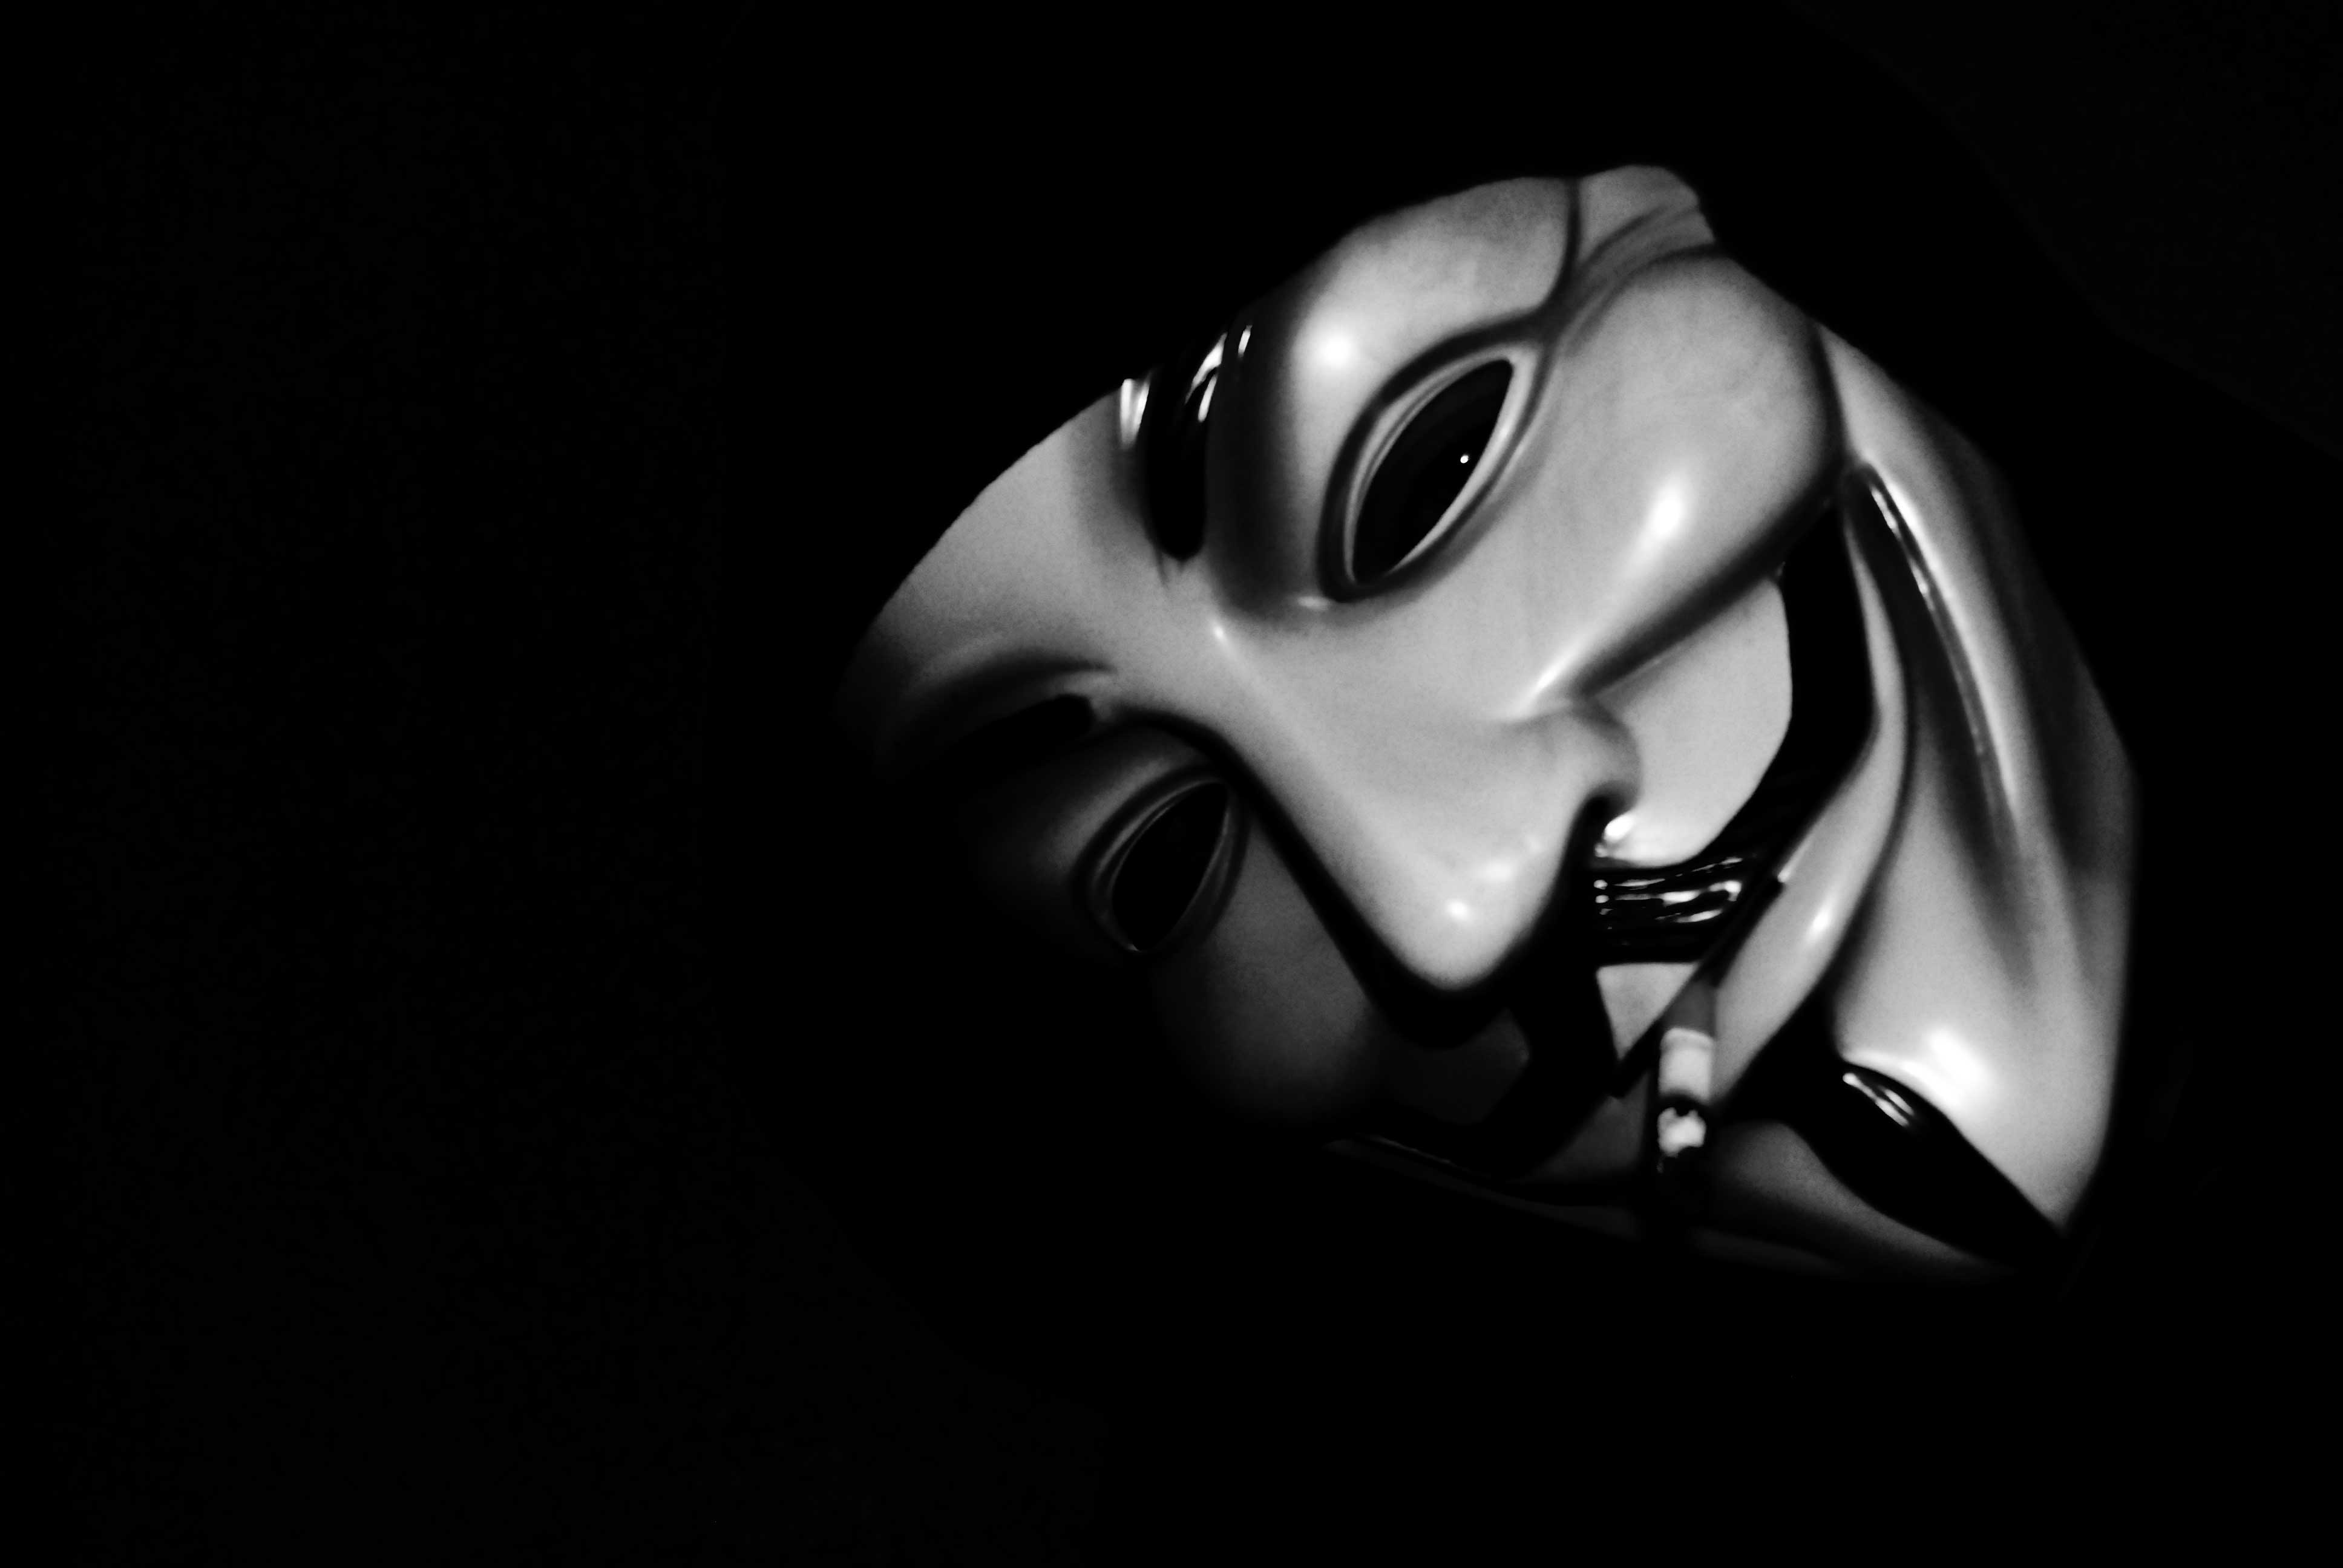 The Mask Wallpaper Posted By Sarah Peltier